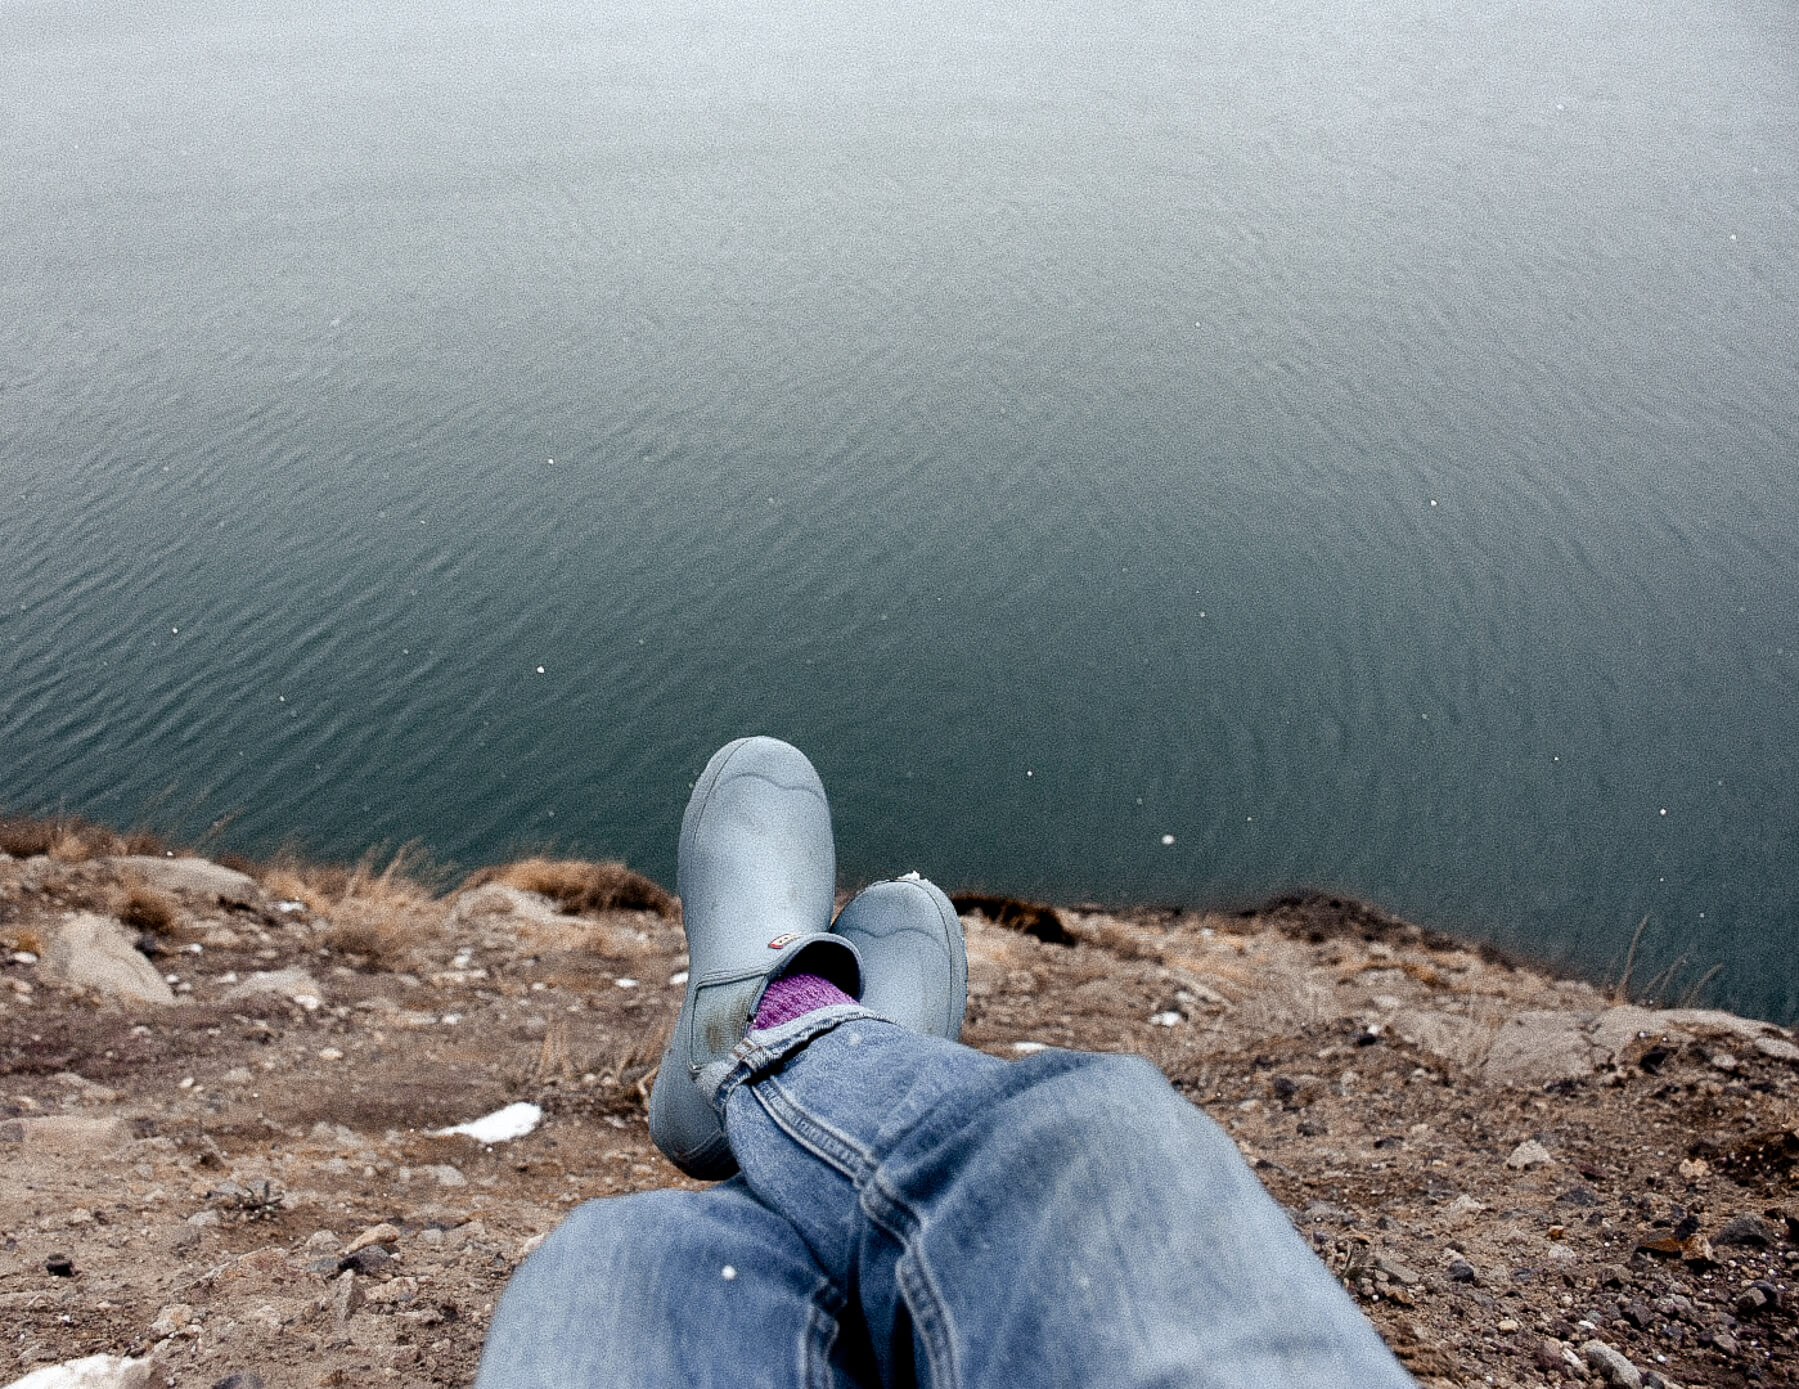 Blue gumboots hanging over the edge of a cliff above a lake